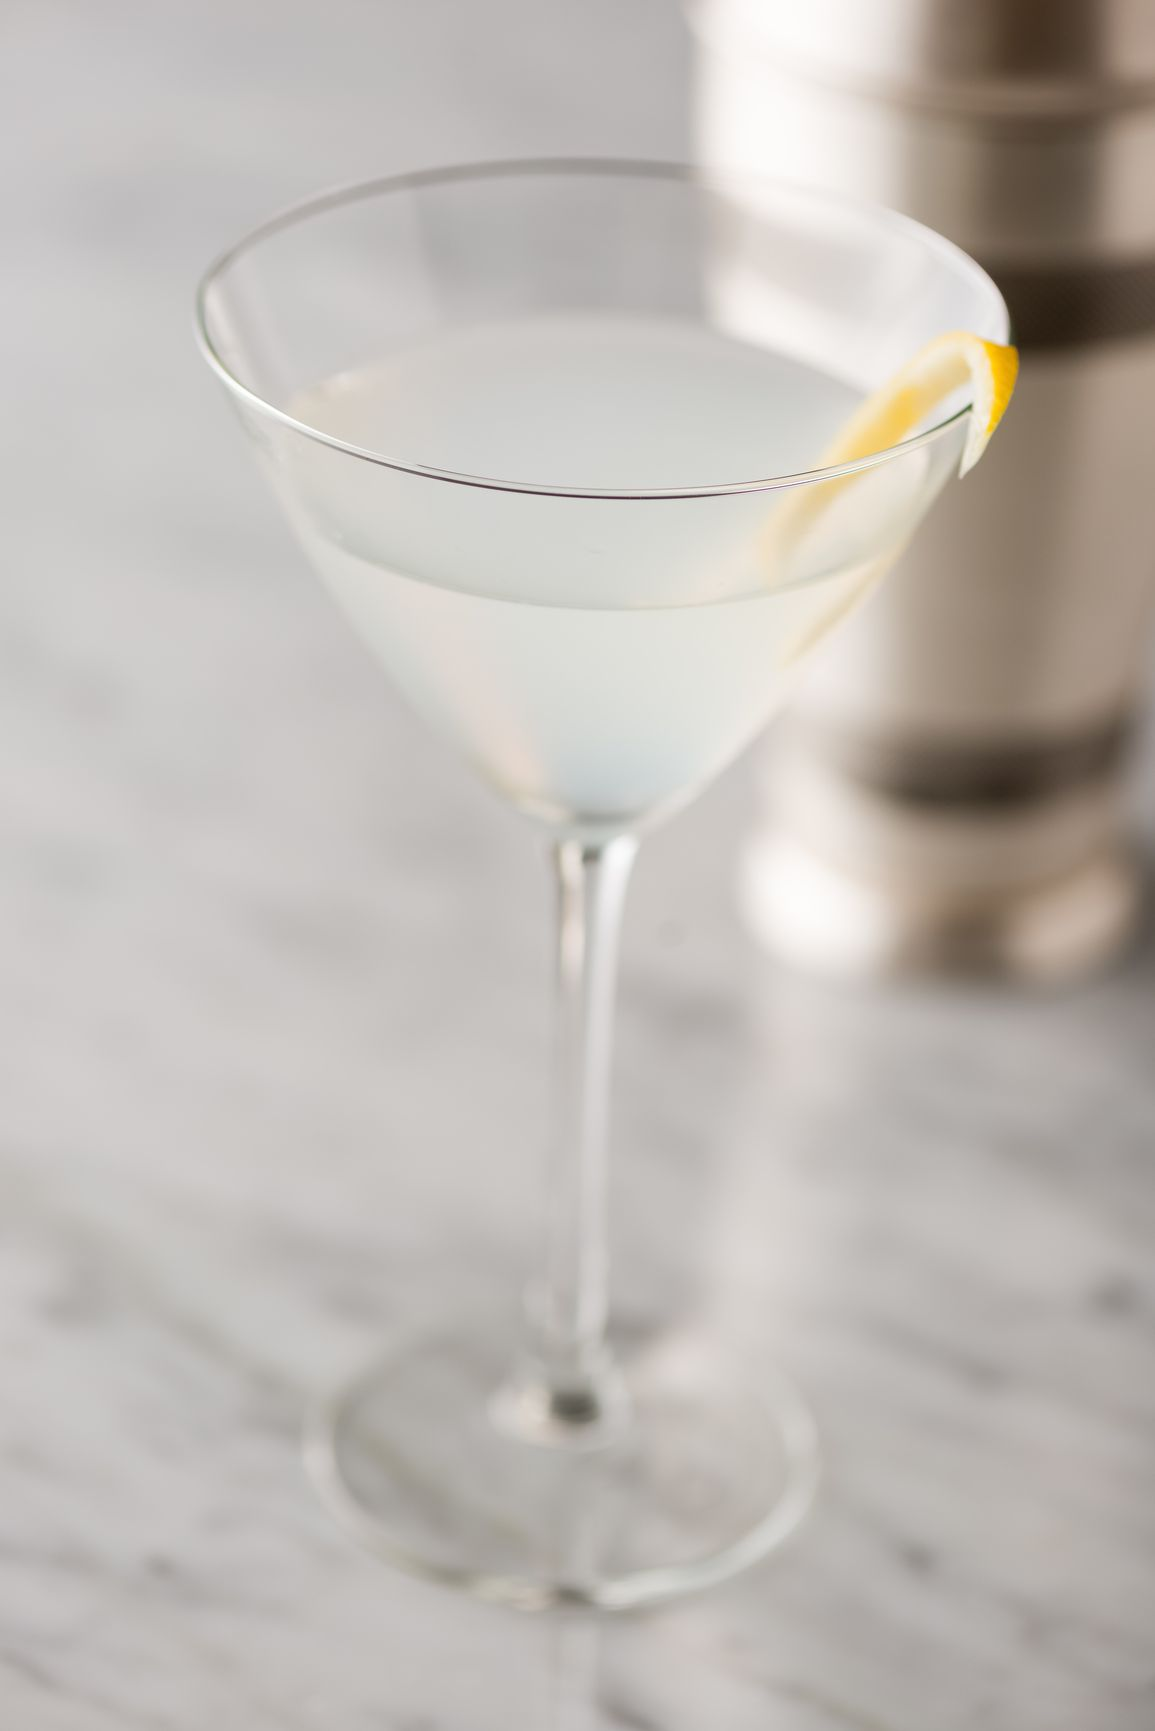 kitchen cooking games country french kitchens show off your best vodka in the clean, crisp martini